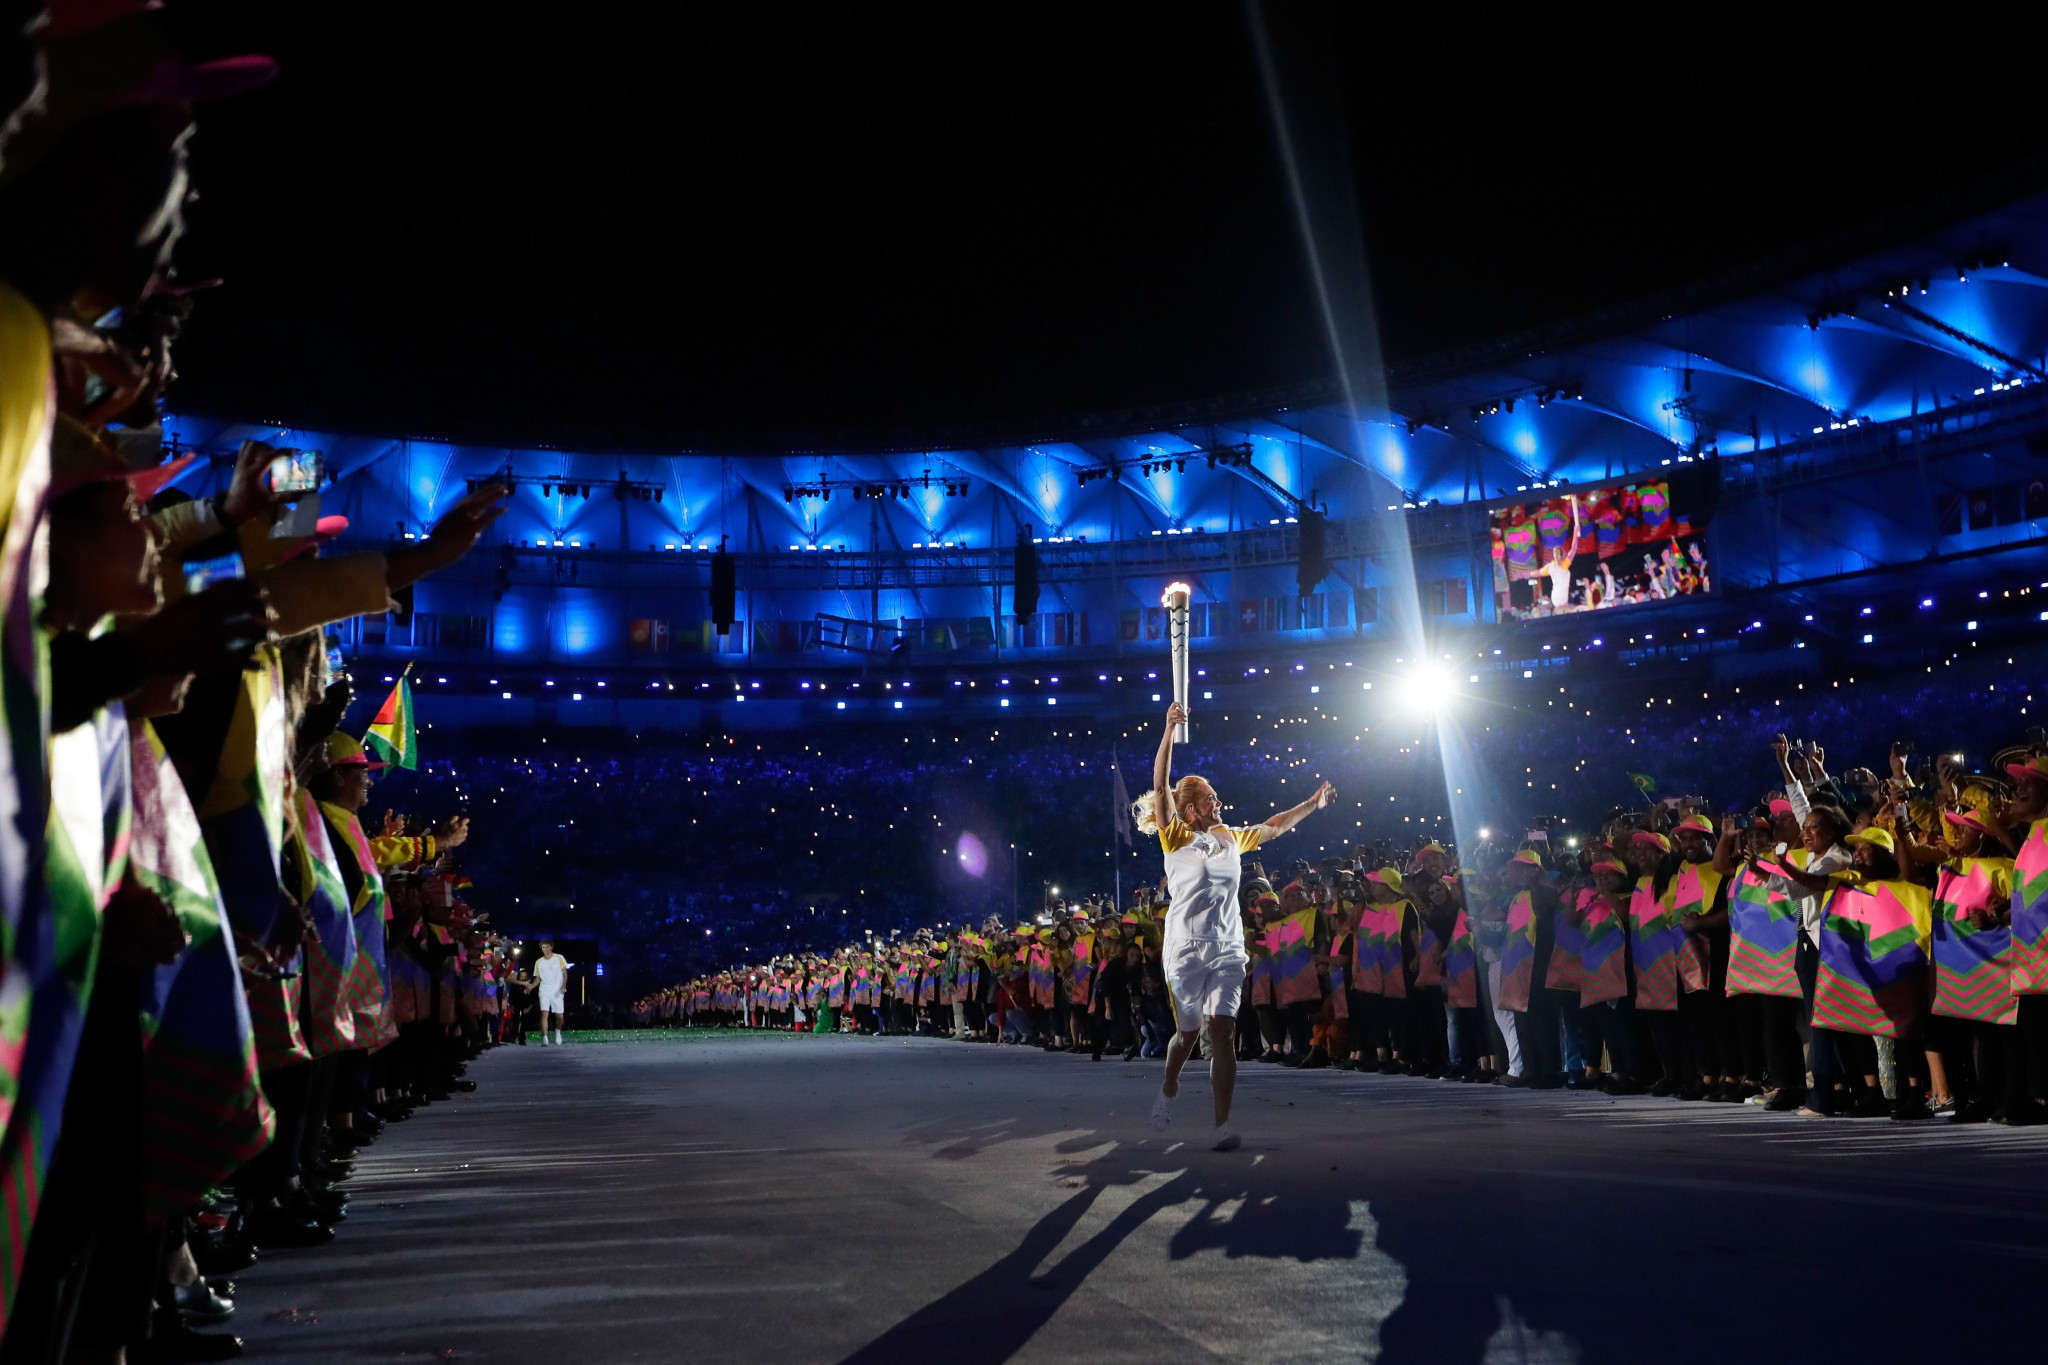 Hortencia Marcari carries the Olympic torch during the Opening Ceremony of the Rio 2016 Olympic Games ©Getty Images